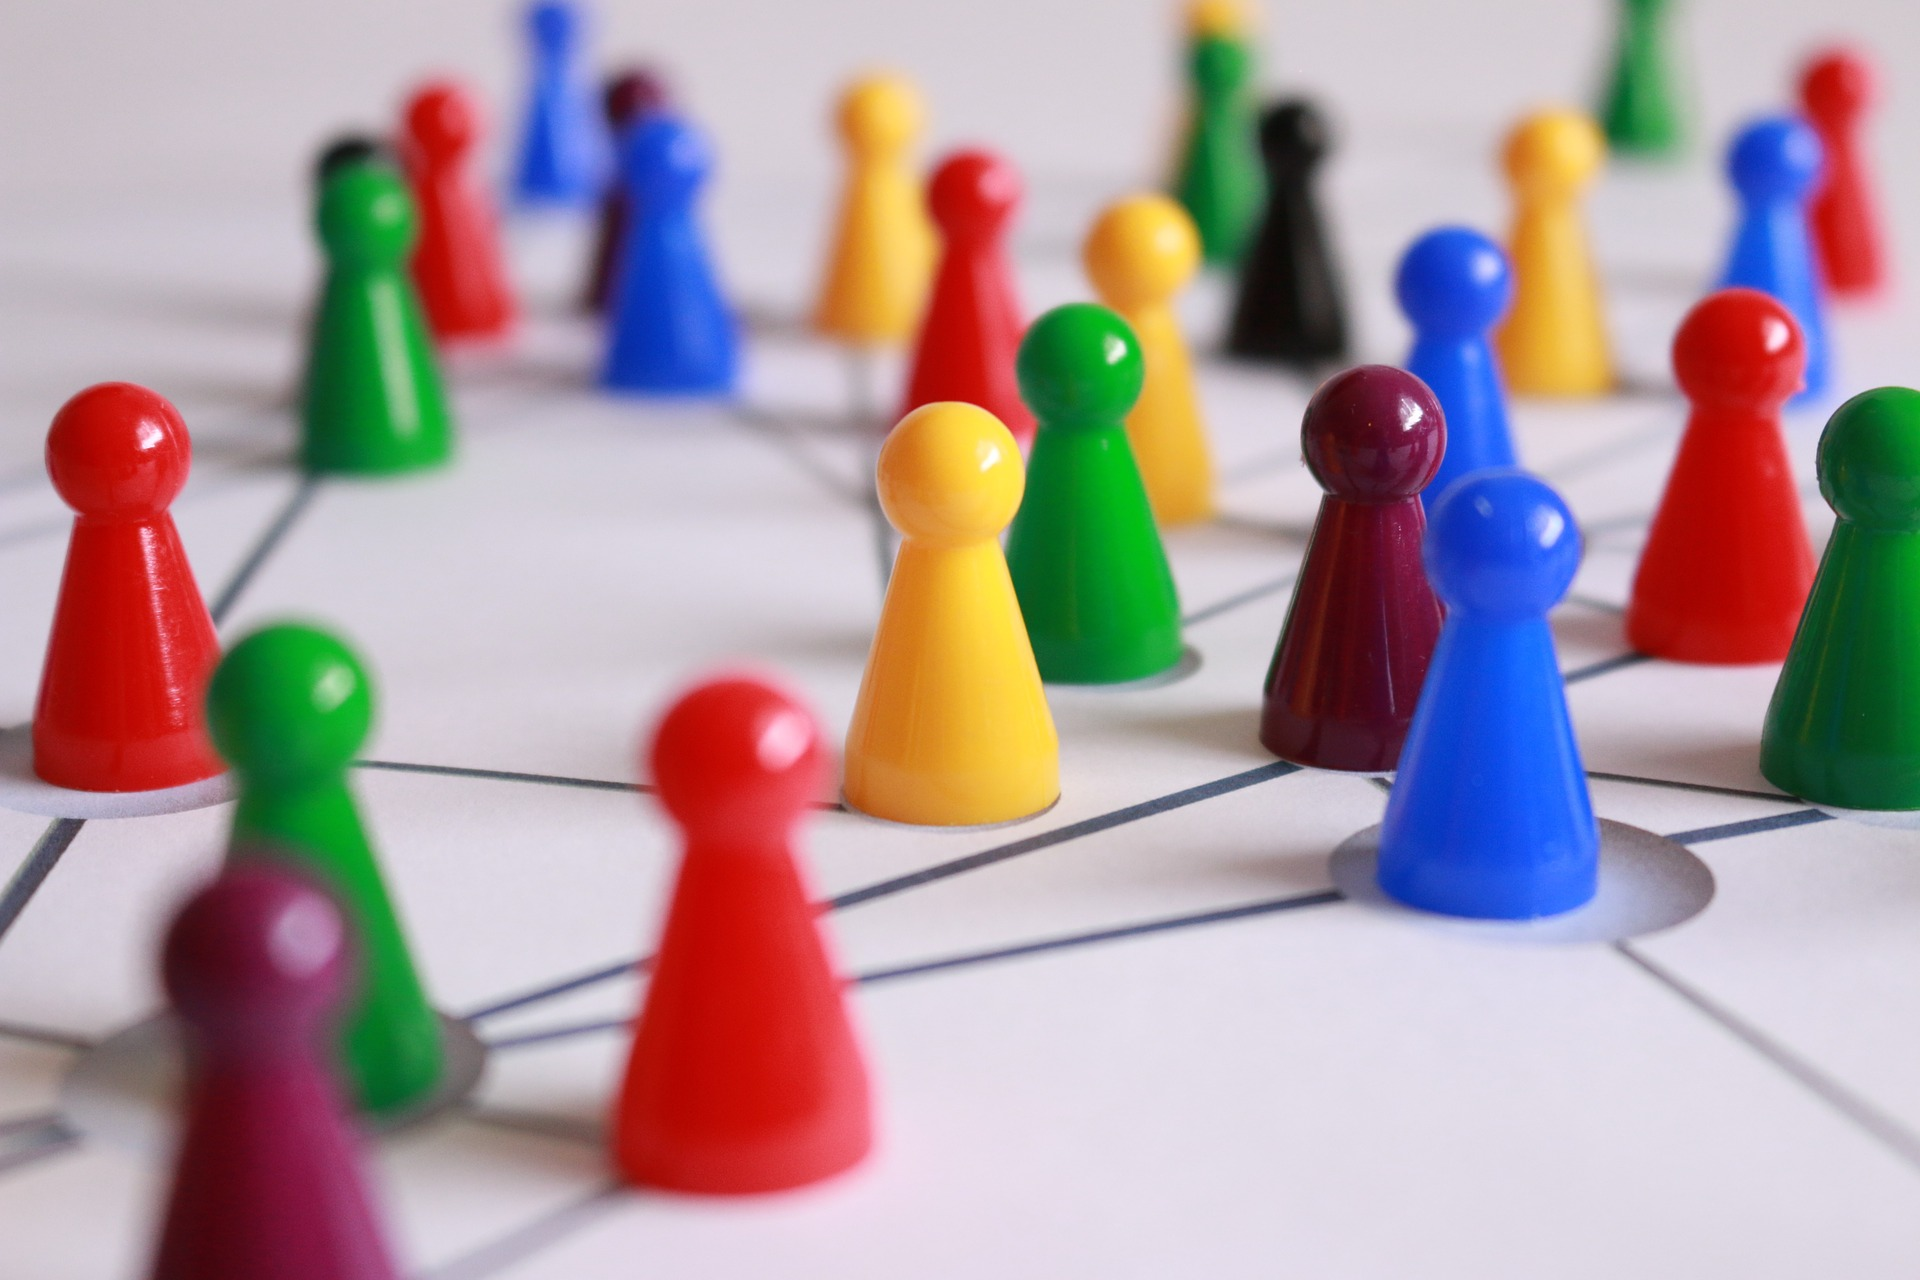 network players connected web community .jpg